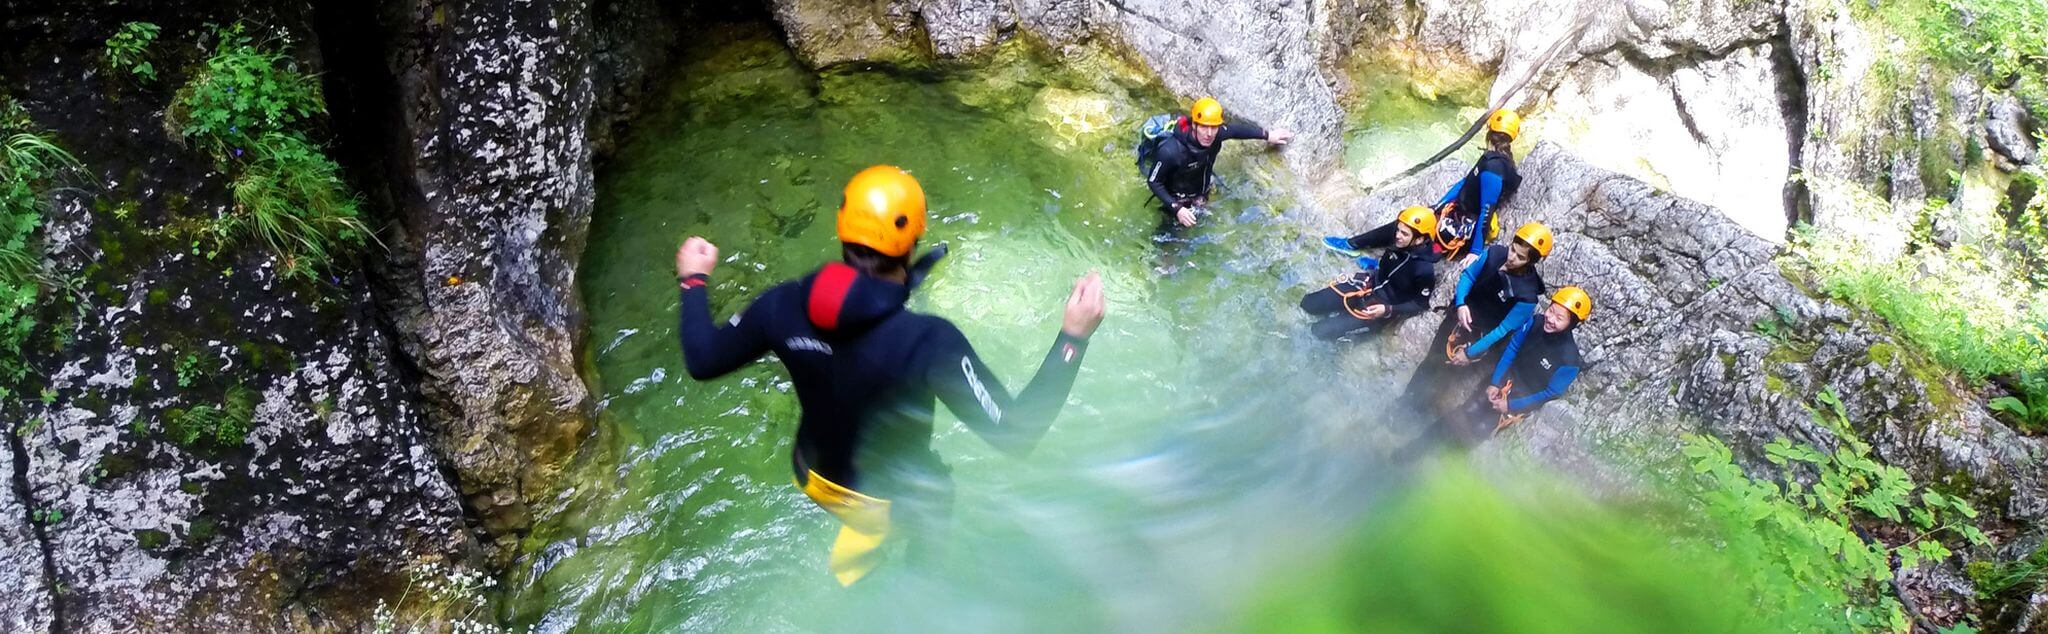 Canyoning in Guardo